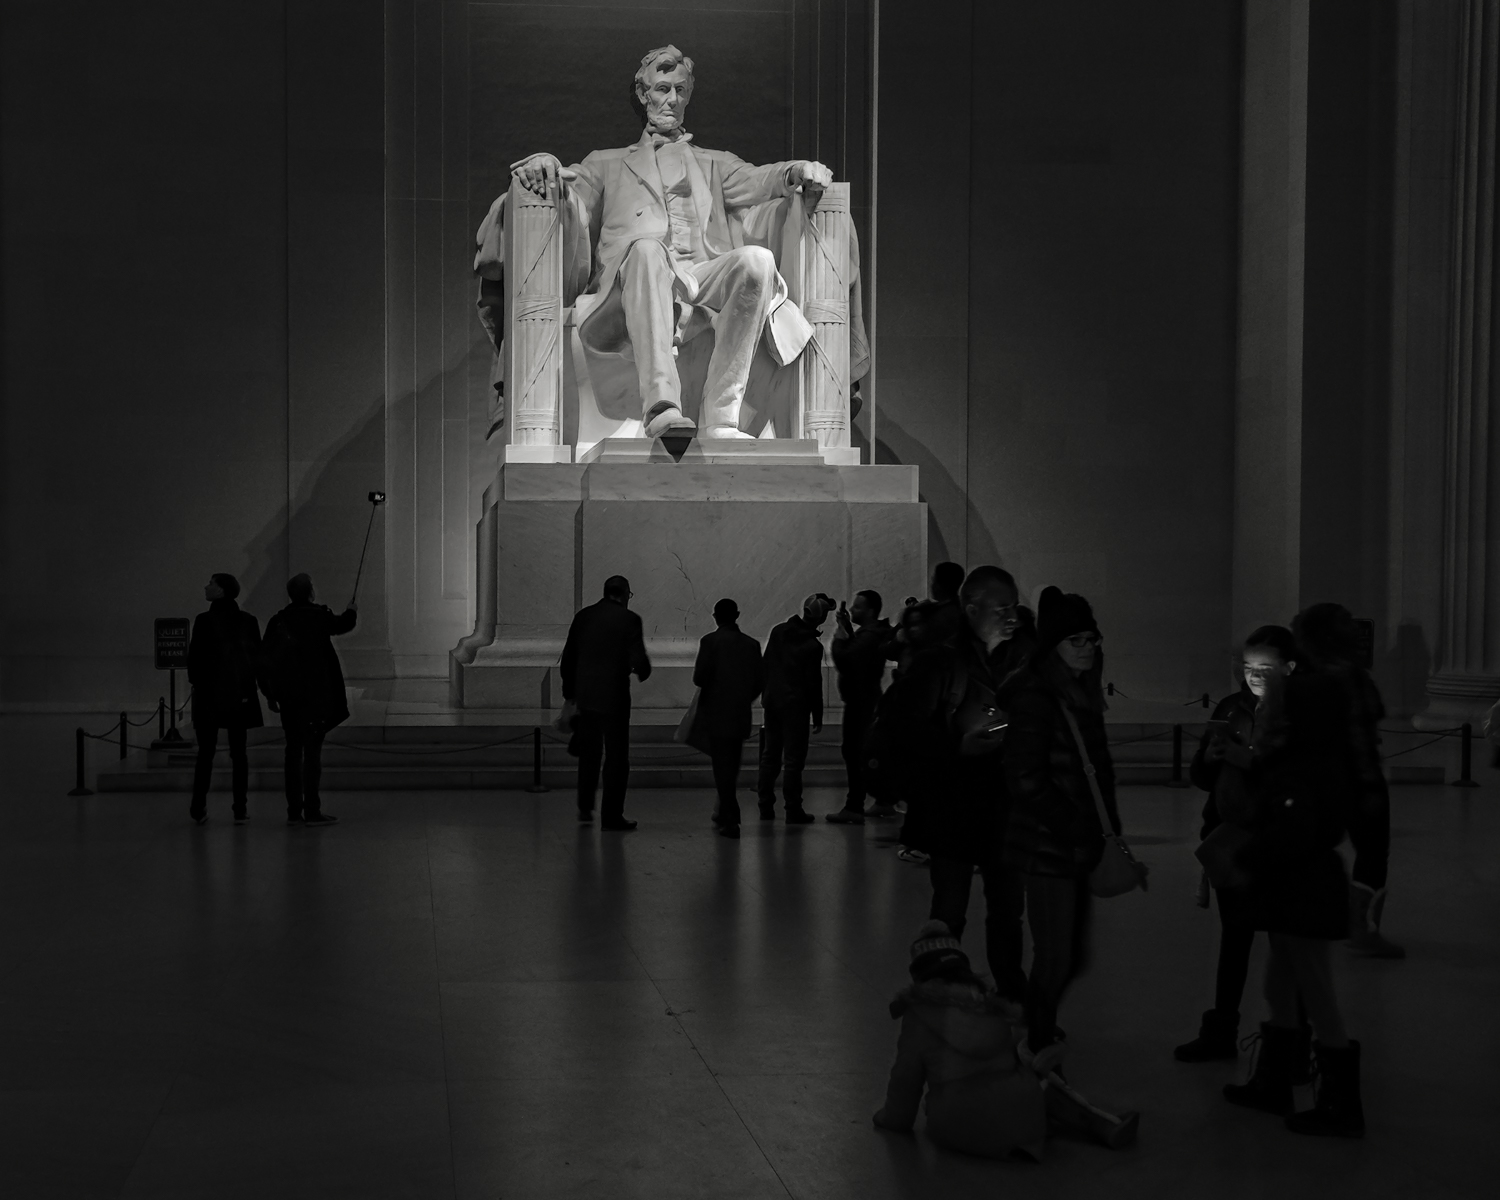 Mr. Lincoln No 2. • The Lincoln Memorial, National Mall, Washington, DC. Fuji x-T2 and a Fujinon XF10-24mm f4 OIS. Image exposed at ISO 1200 at f4 for 3 seconds.